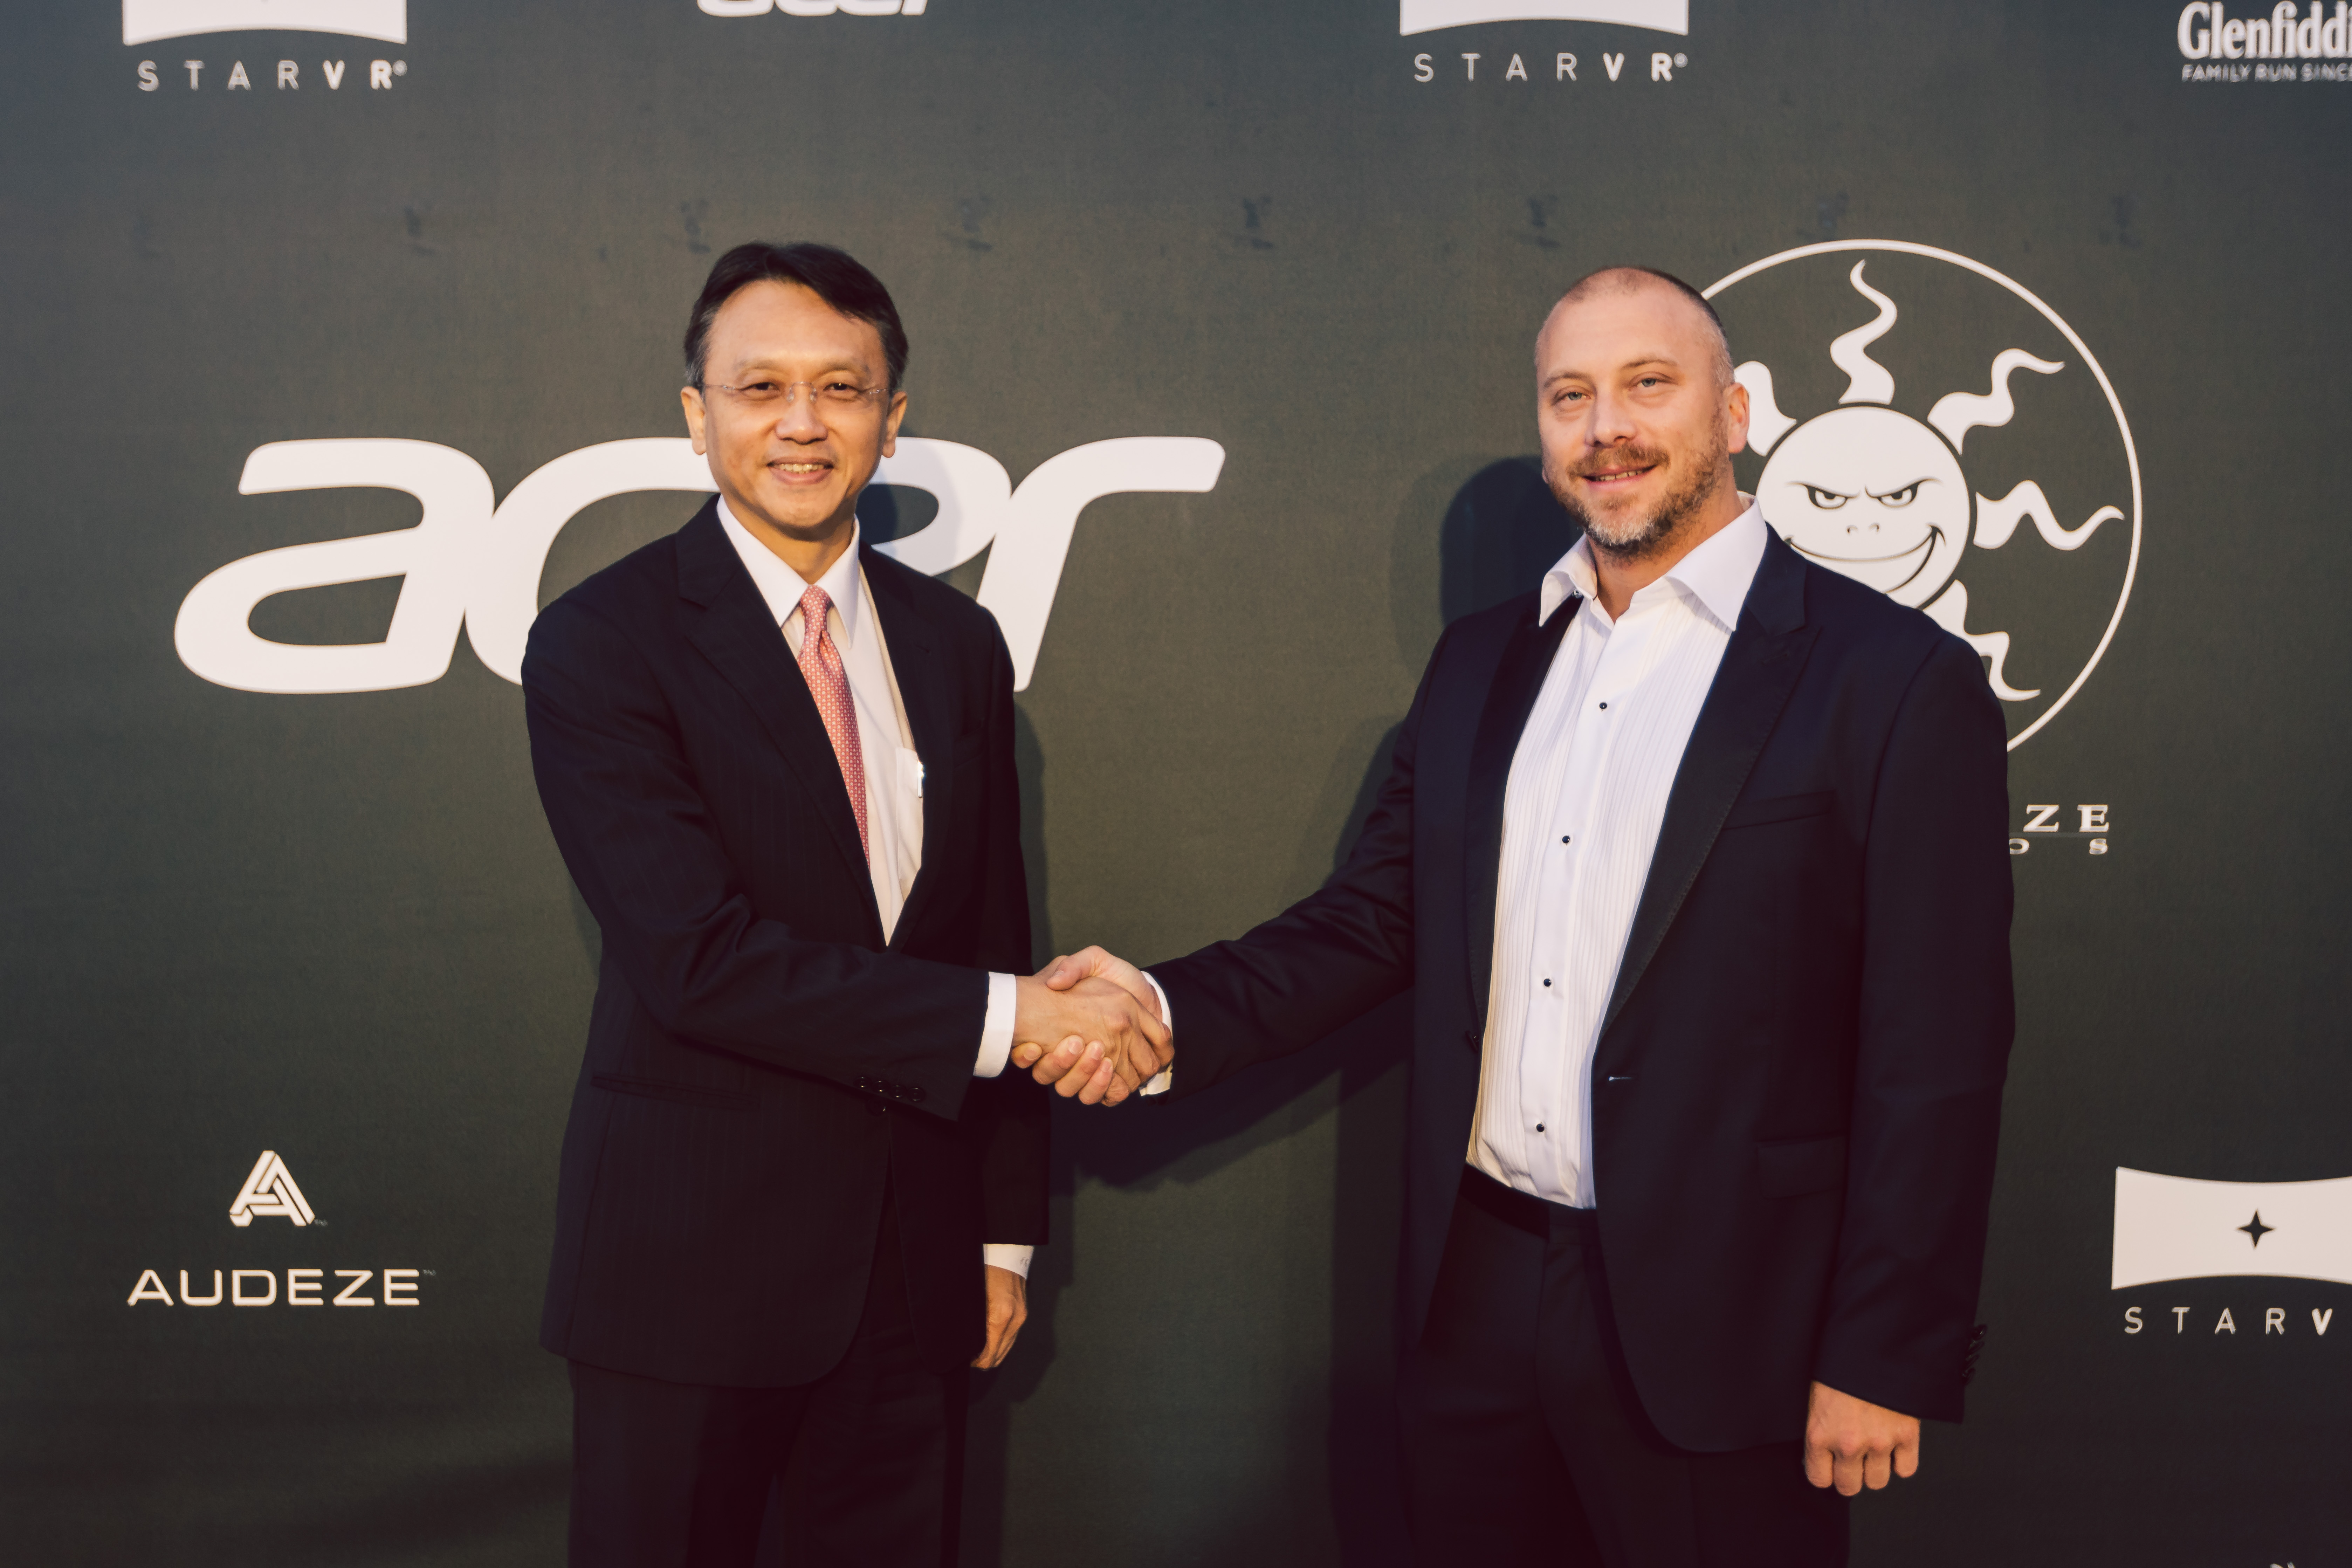 Acer To Invest 9 Musd In Starbreeze Through 2 Year Convertible Bond